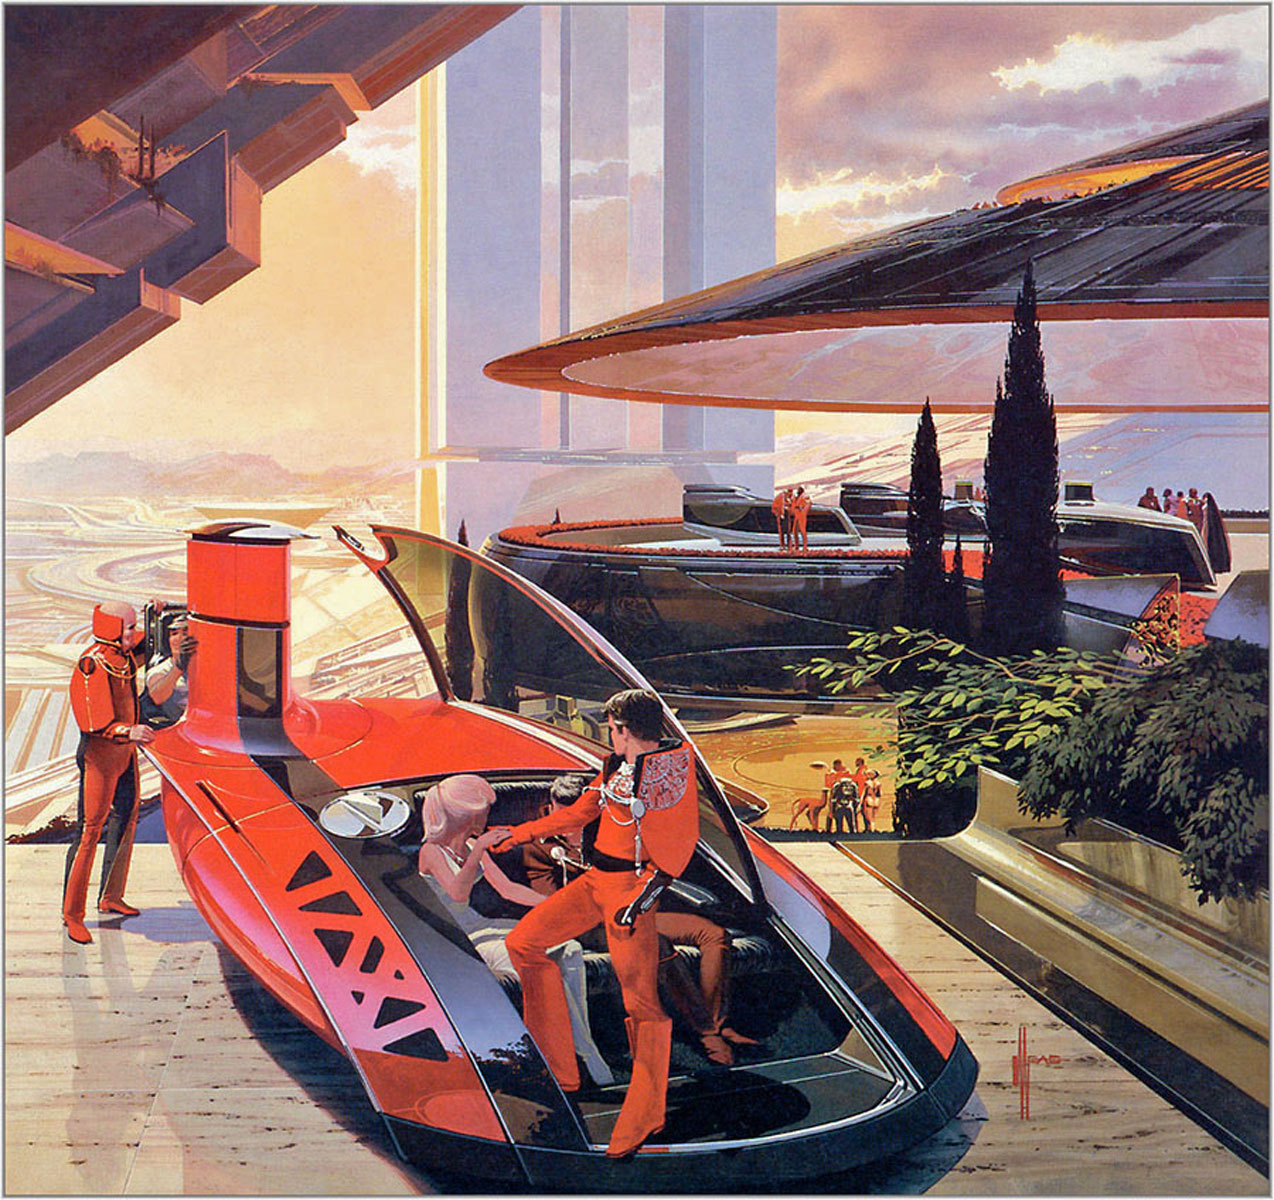 Syd Mead The mind blowing artwork of Syd Mead Knowledge Glue